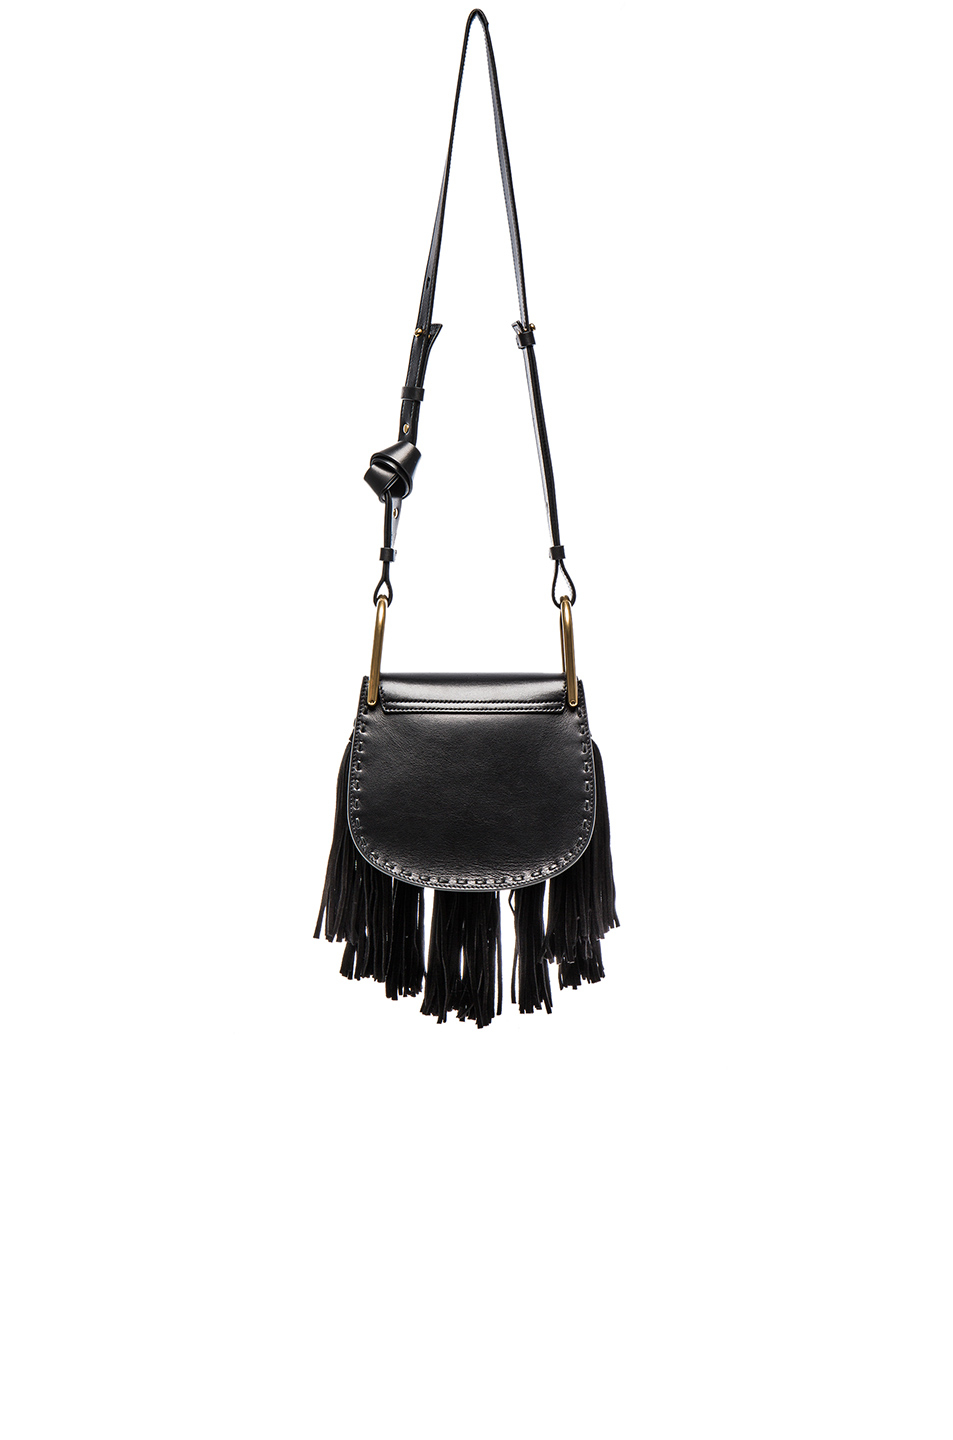 Chlo�� Hudson Mini Braided Leather And Suede Bag in Black | Lyst